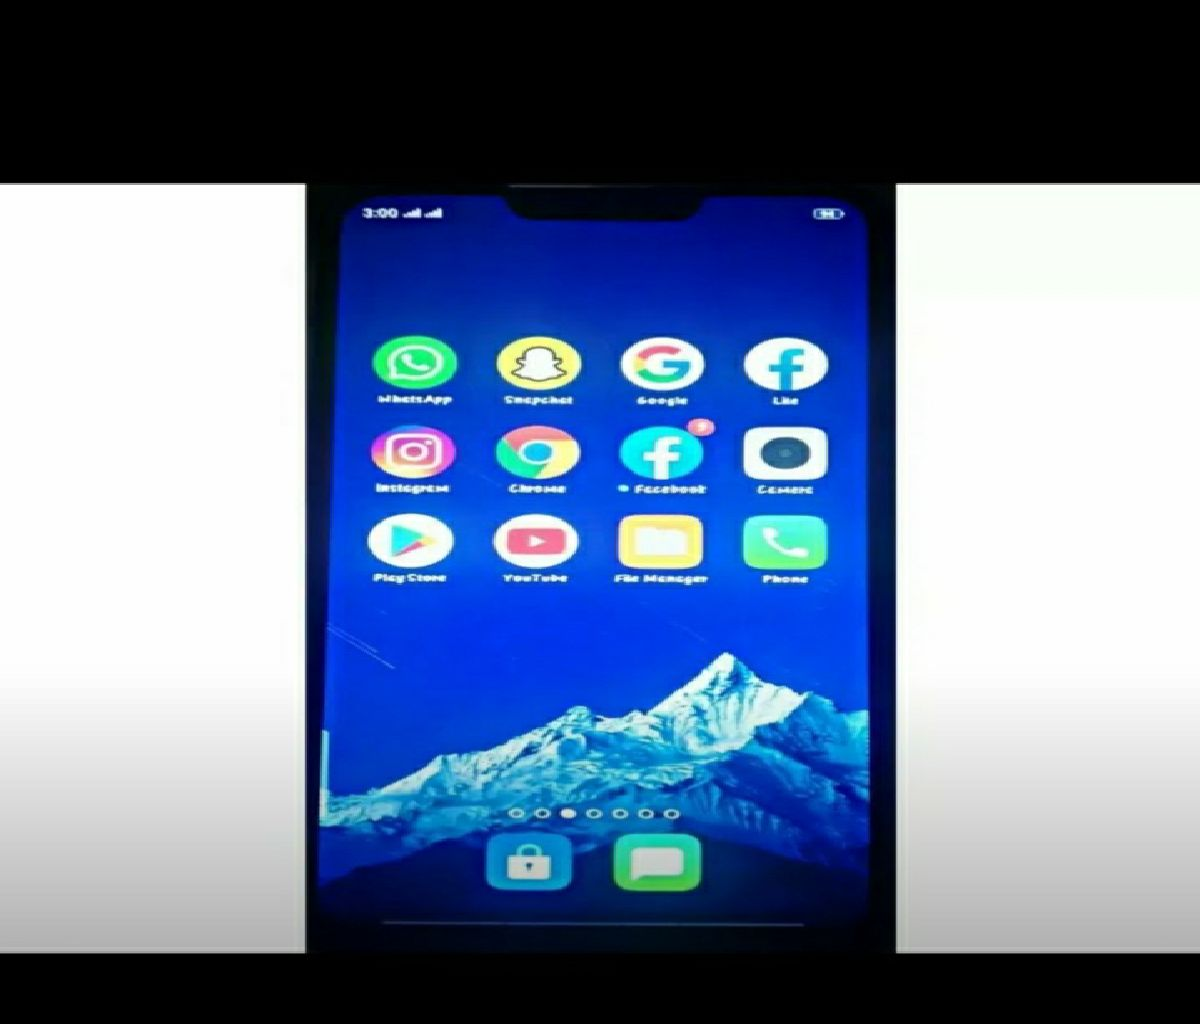 Oppo a3 s with 16 gb memory with 13+8 mp cameras - photo 2